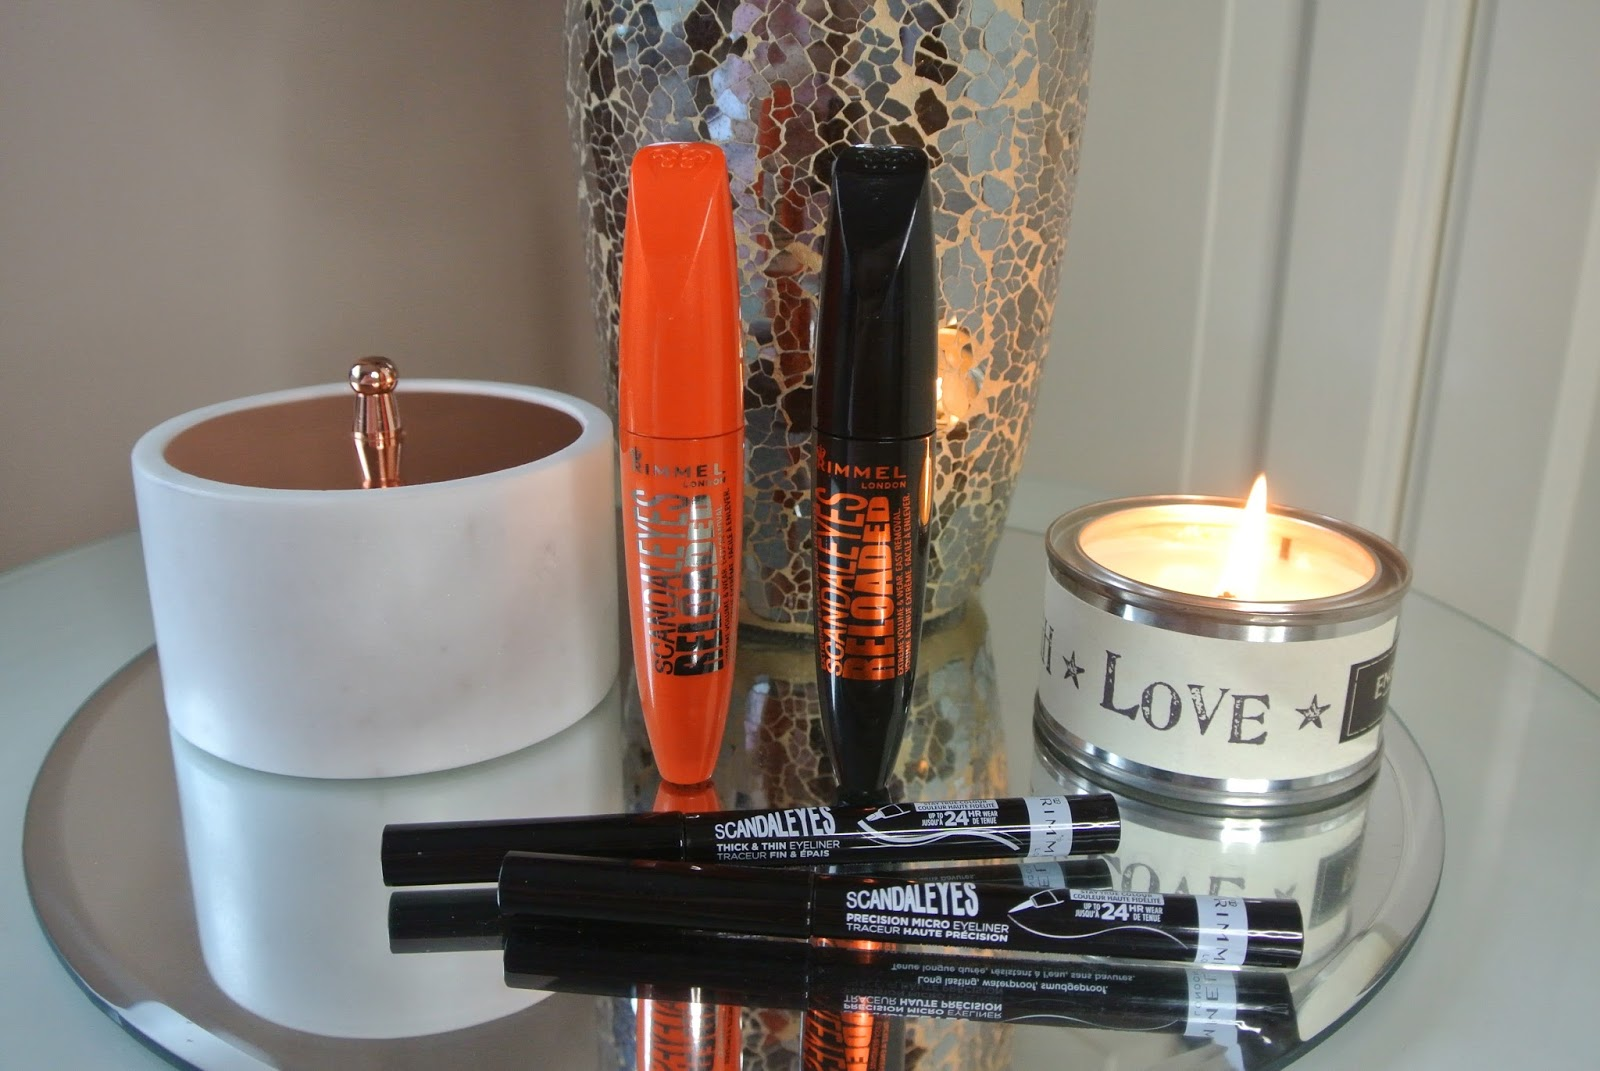 Rimmel Scandaleyes Reloaded Mascara in Black and Extreme Black and Micro Precision and Thick and Thin Eyeliner Review Image